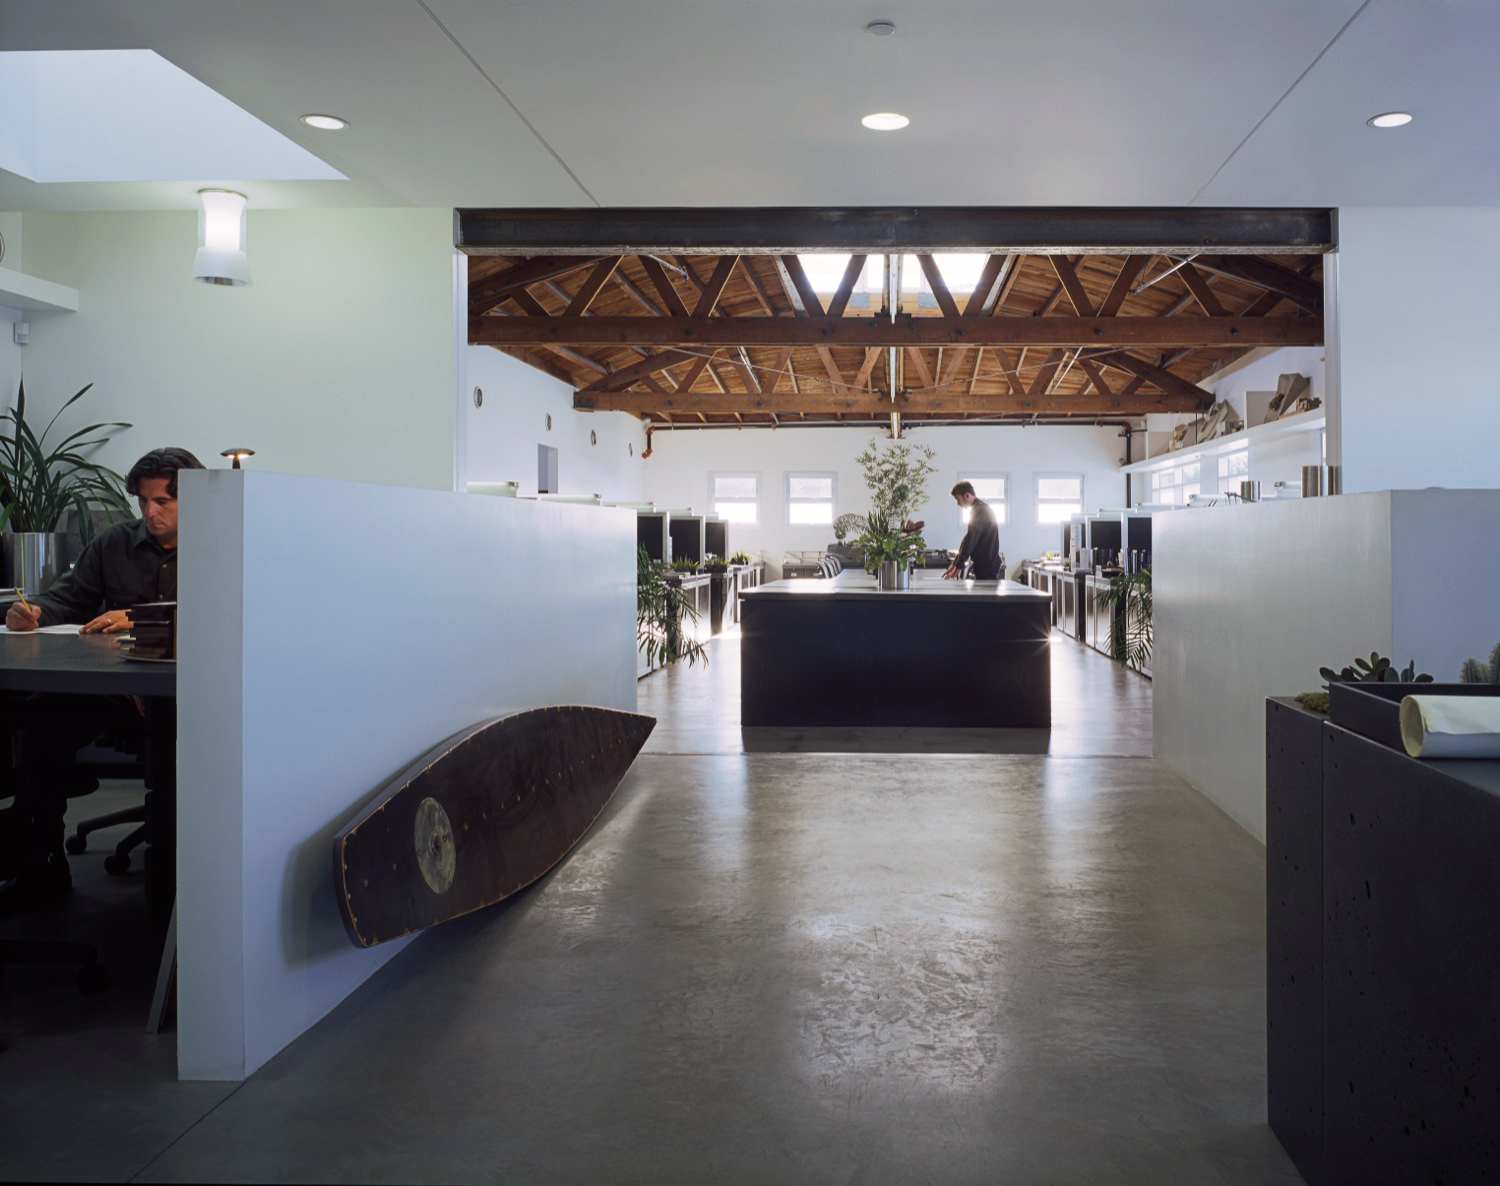 S.E.A.-Studio-Environmental-Architecture-David-Hertz-FAIA-1920-Olympic-Santa-Monica-adaptive-reuse-sustainable-regenerative-restorative-green-design-warehouse-truss-upcycle-recycle-creative-office-commercial-building-life-cycle-LEED-platinum-5.jpg